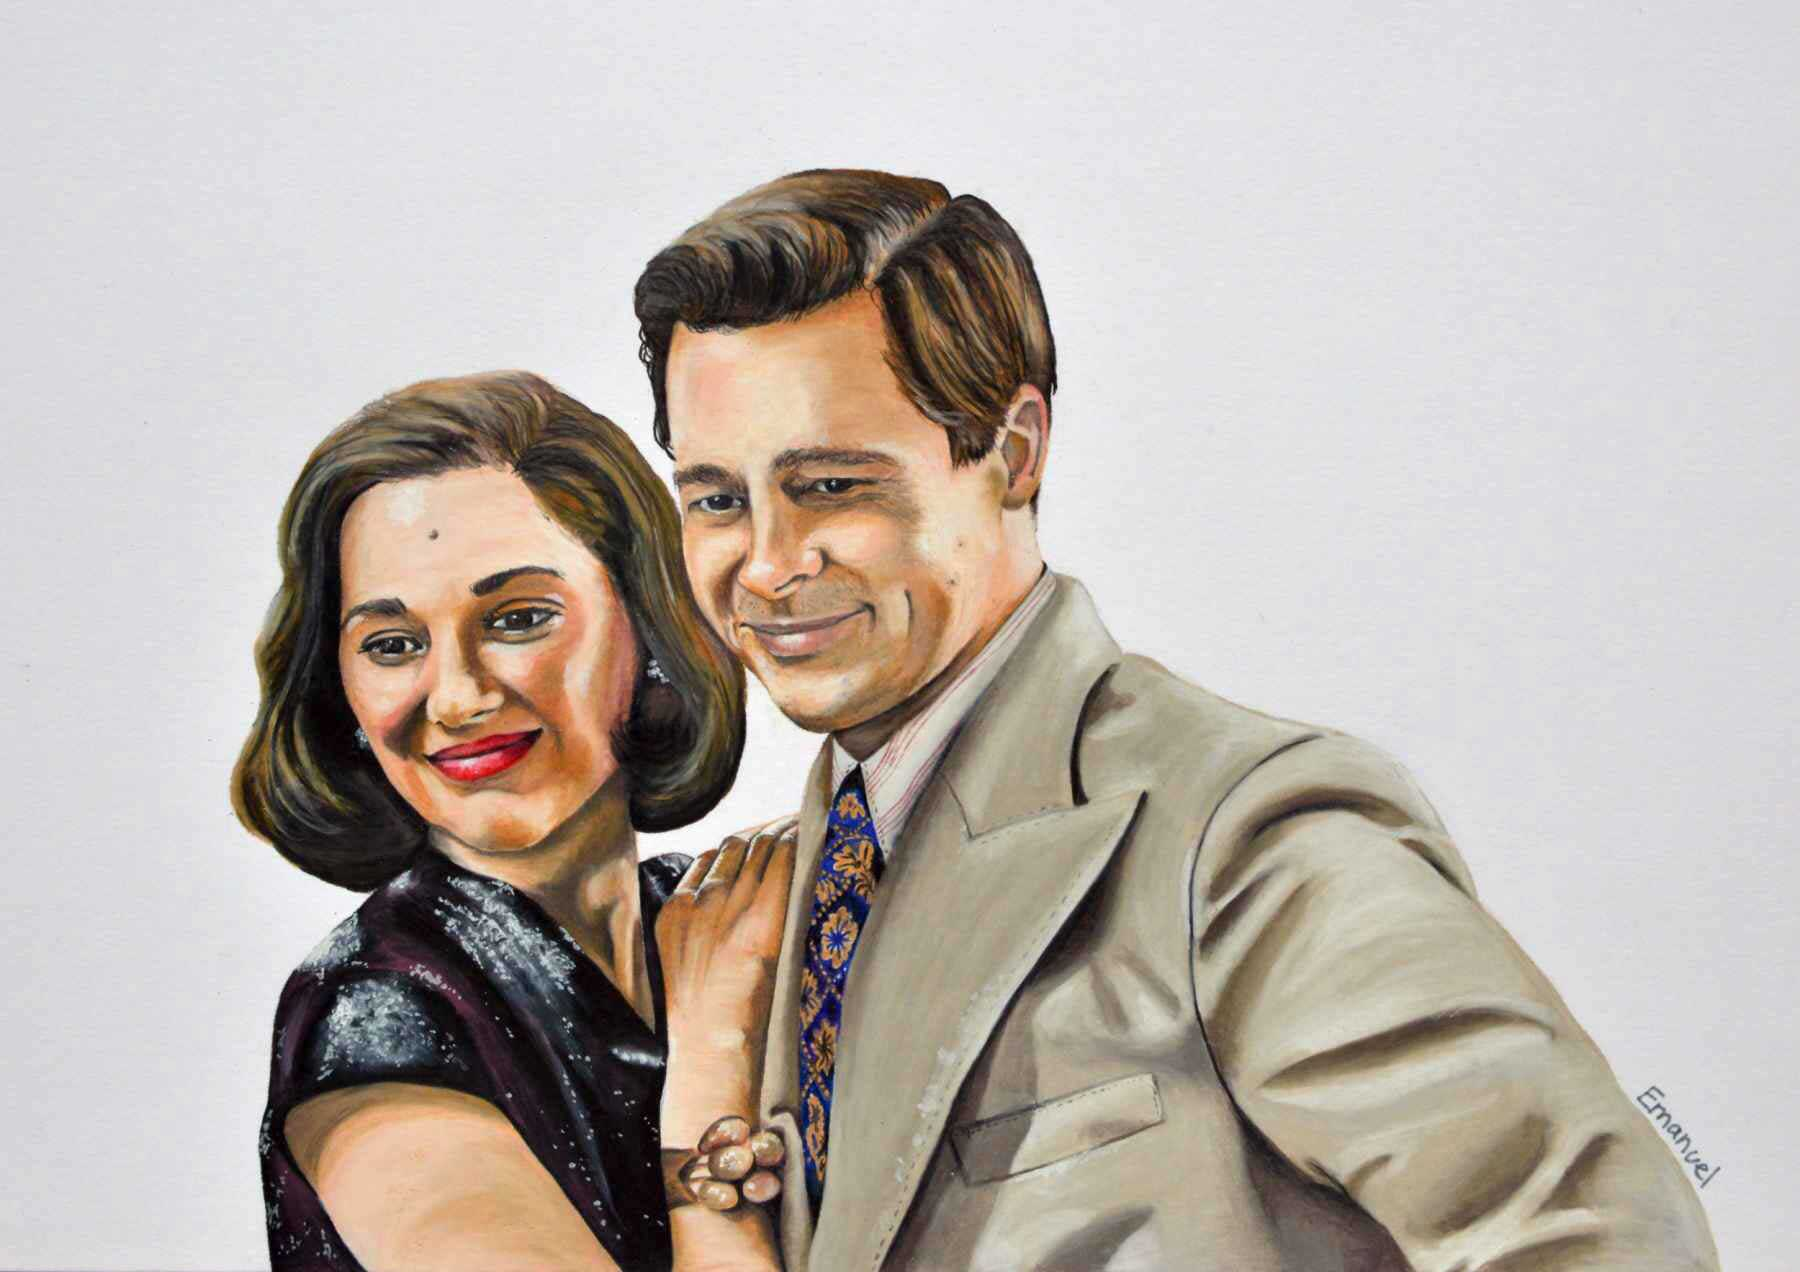 Marion Cotillard and Brad Pitt in the movie: Allied 2016